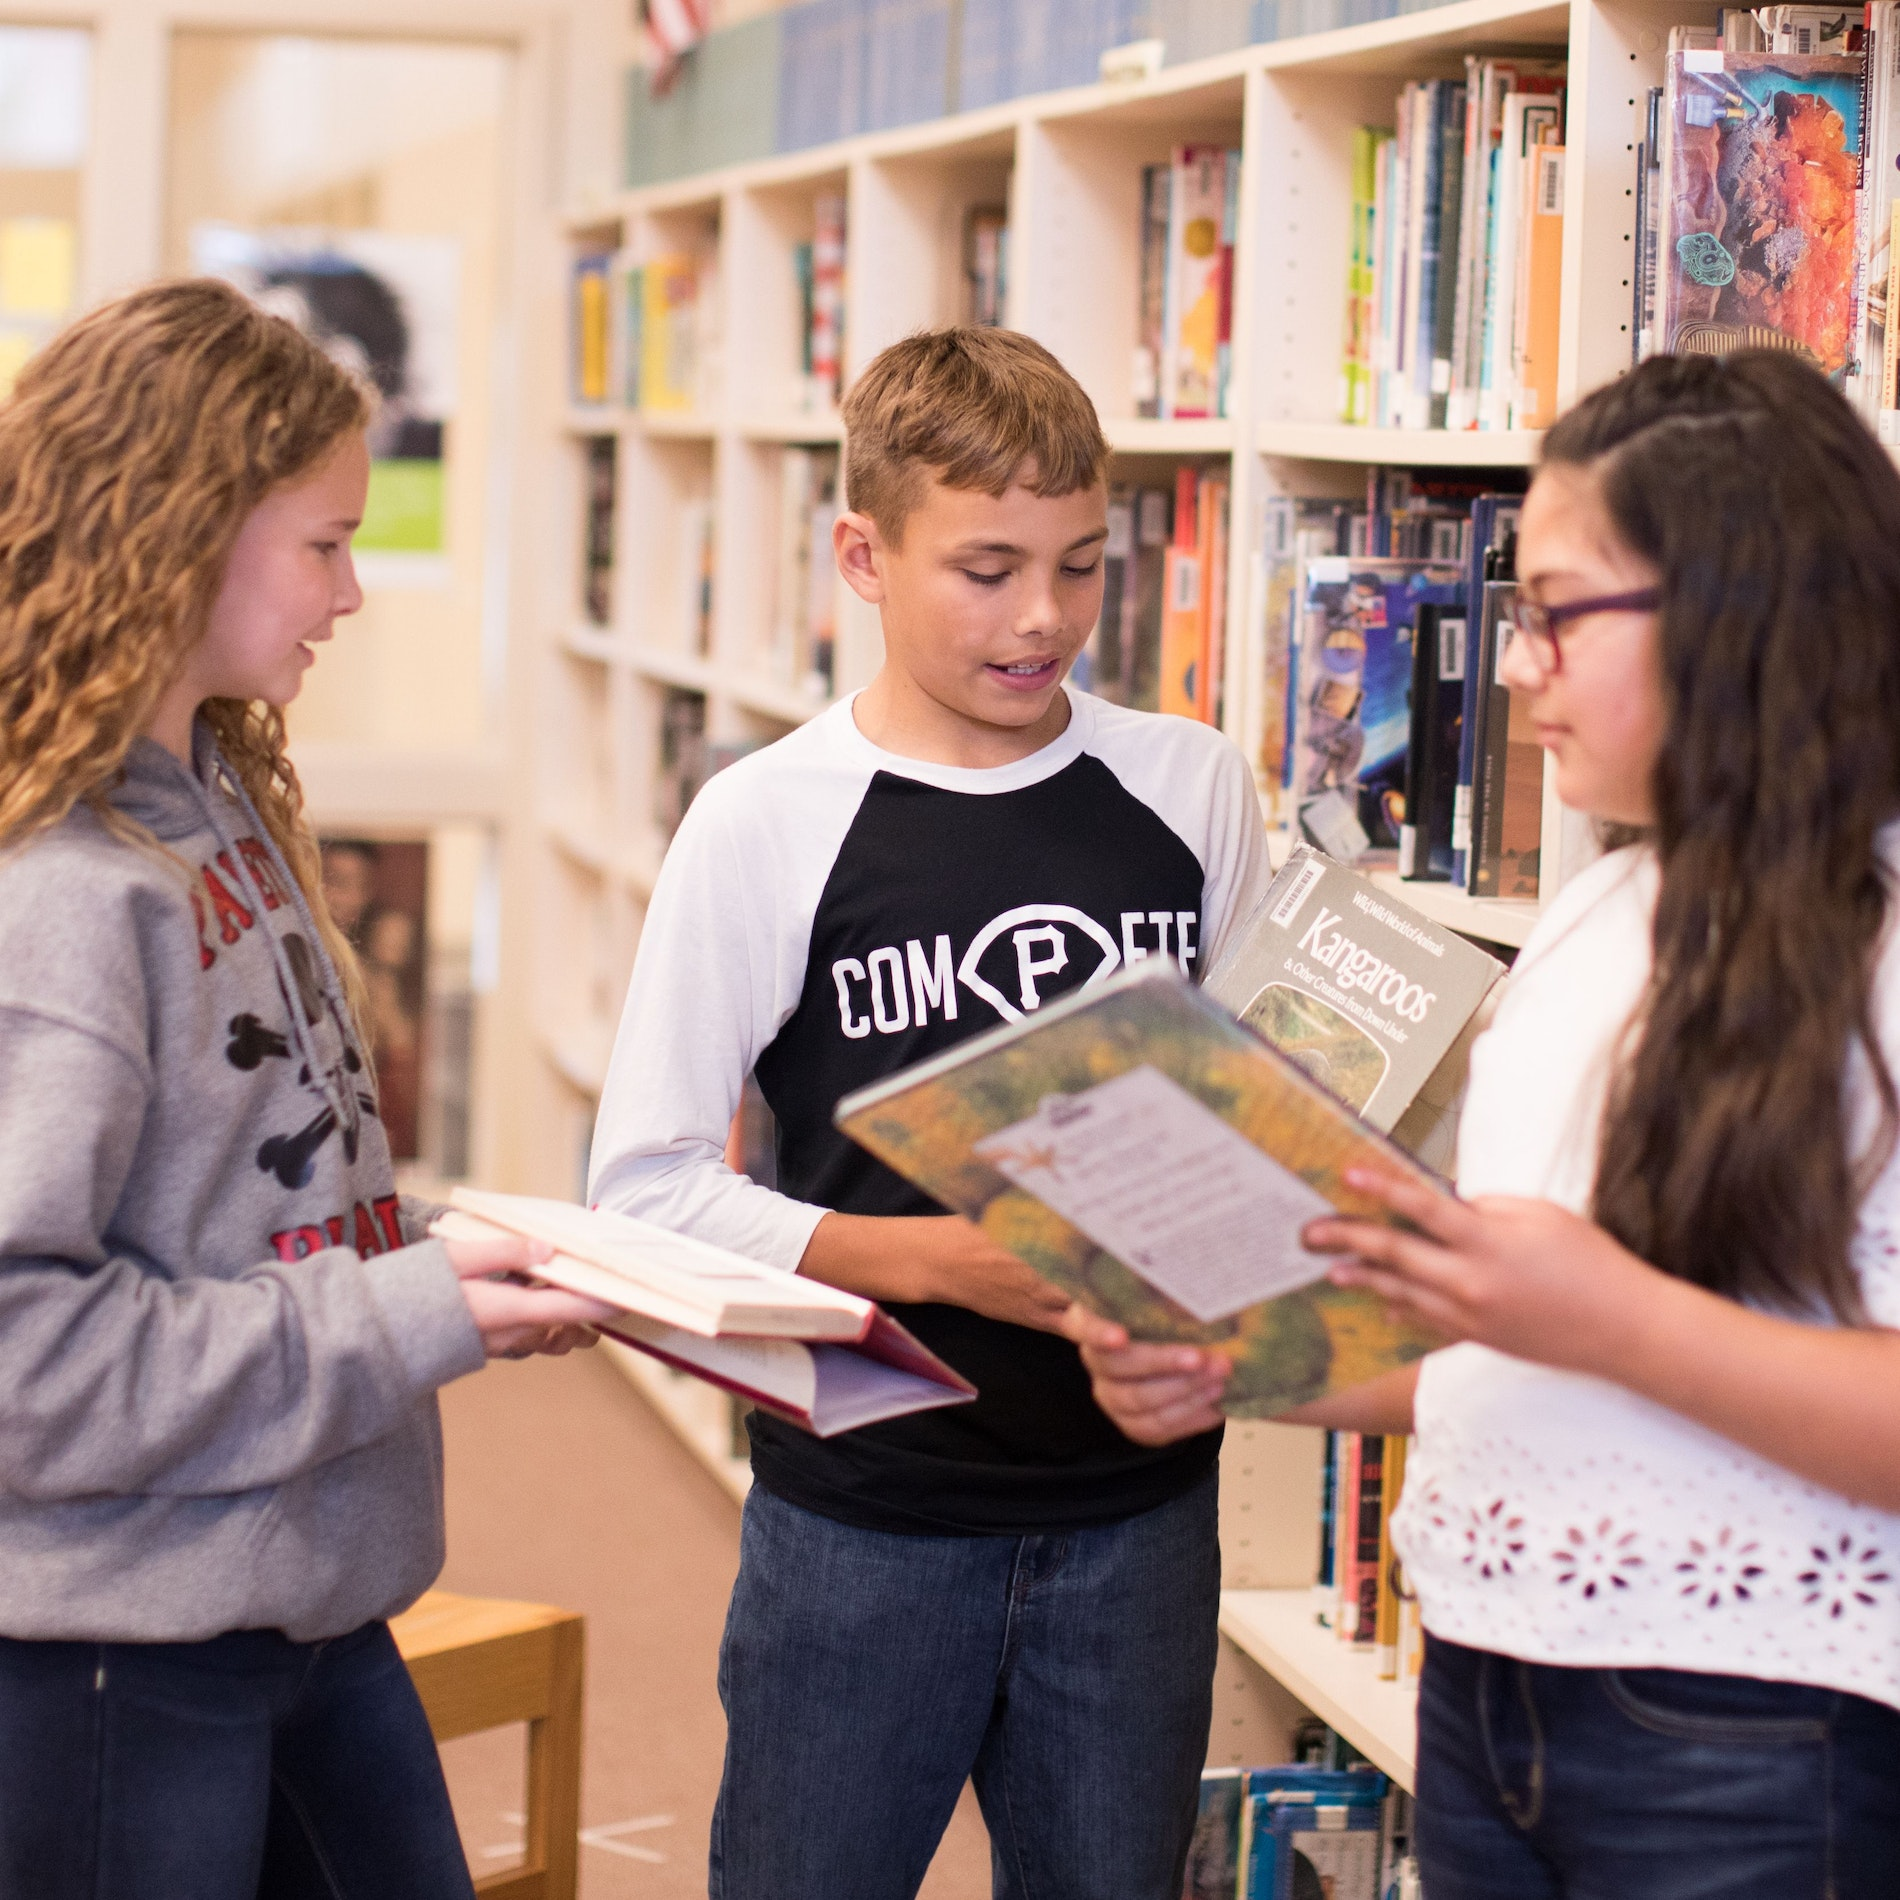 Three students sharing books in the library.